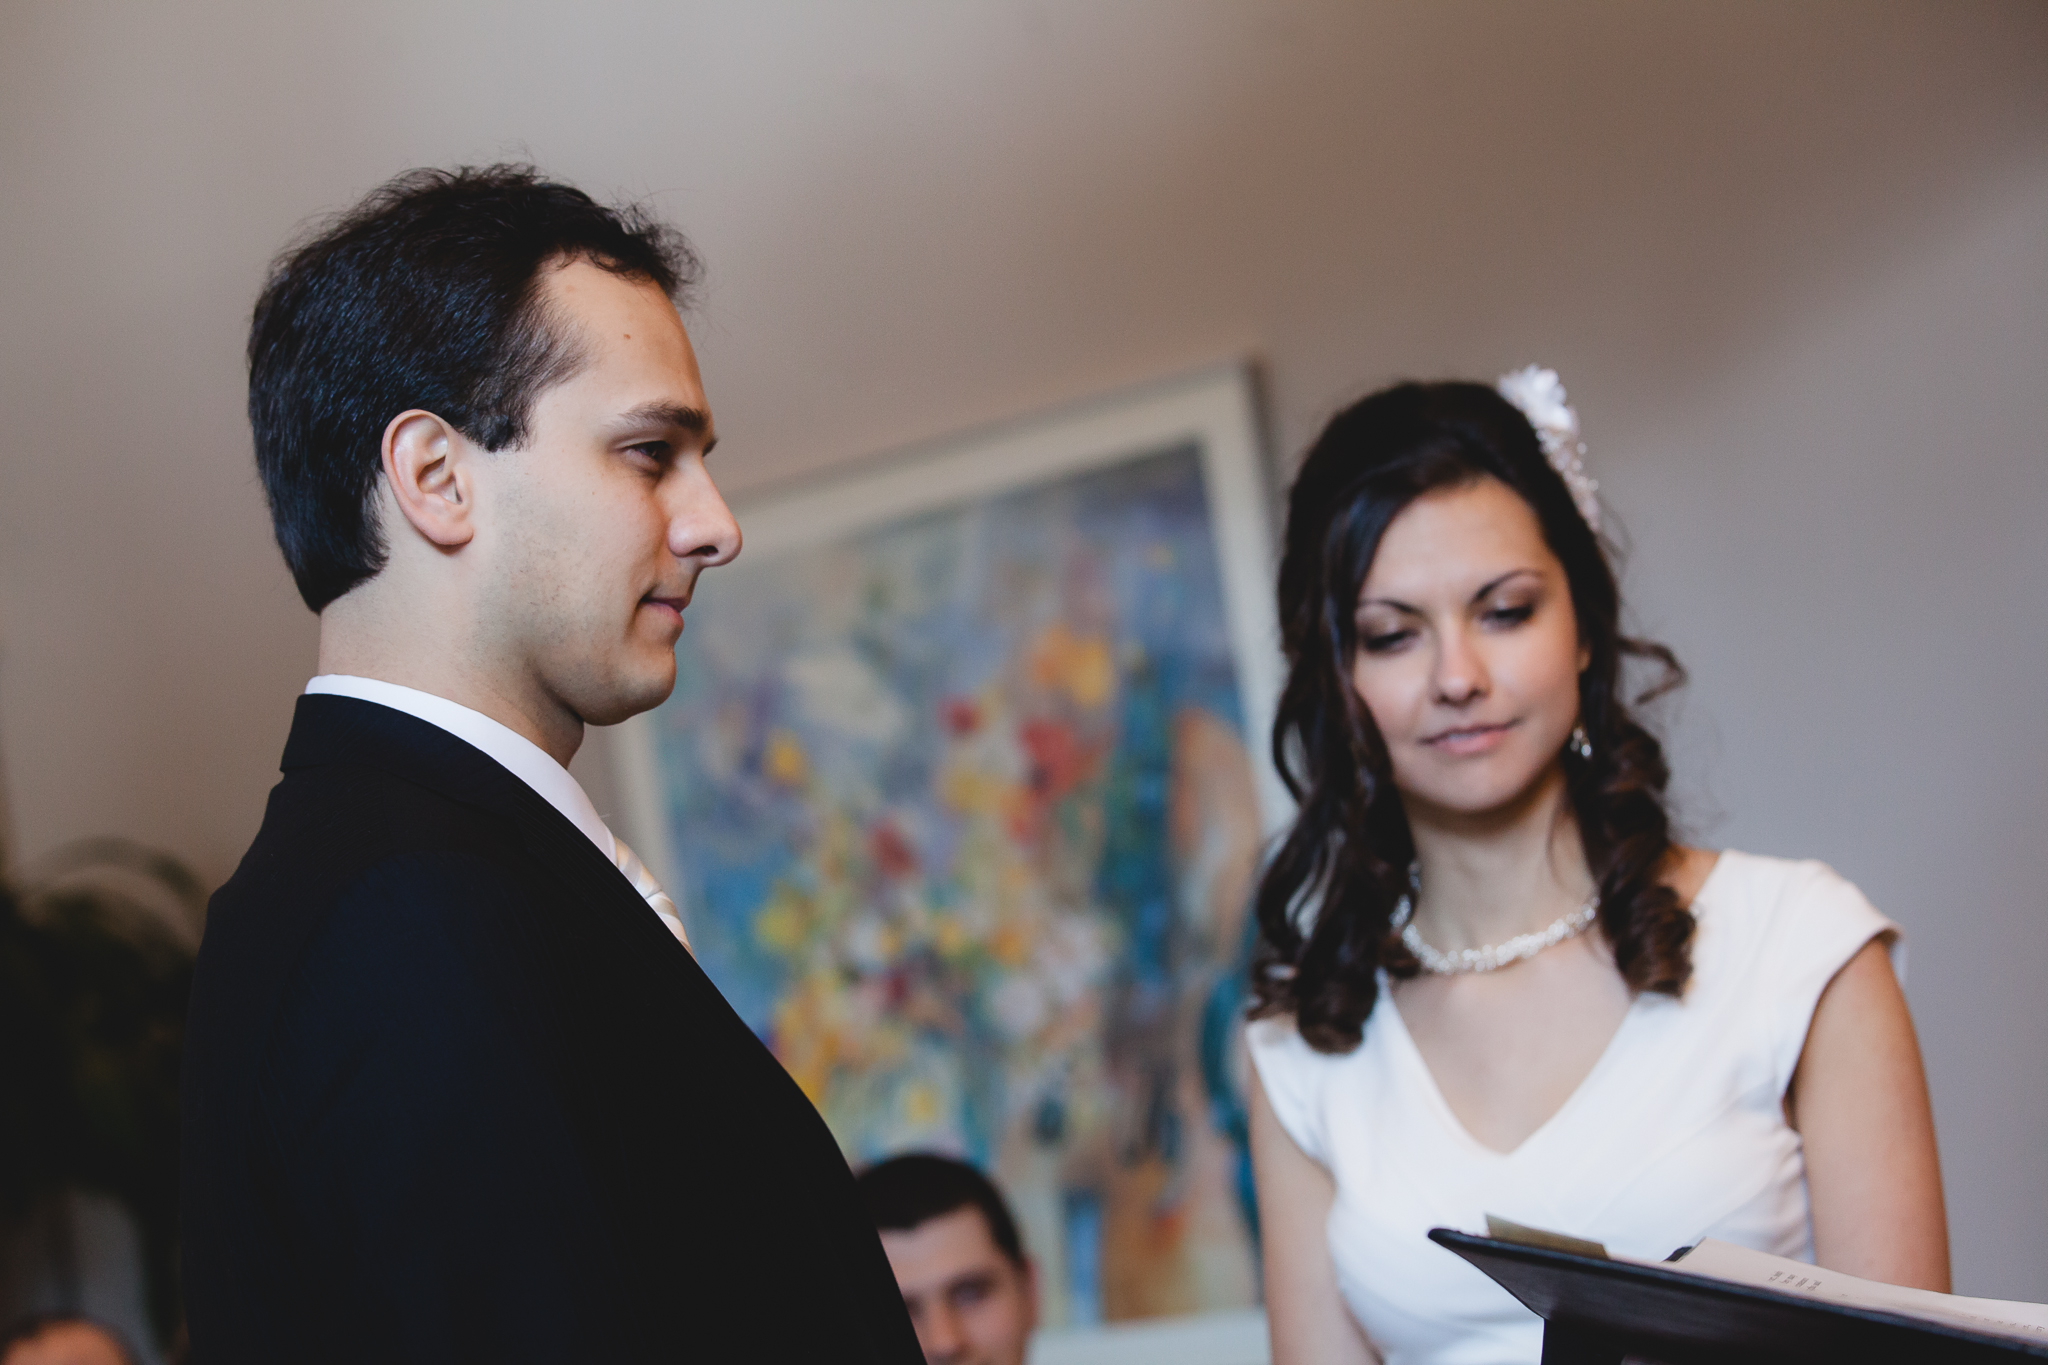 Toronto Wedding Photography - Zoya & Alexei -9.jpg